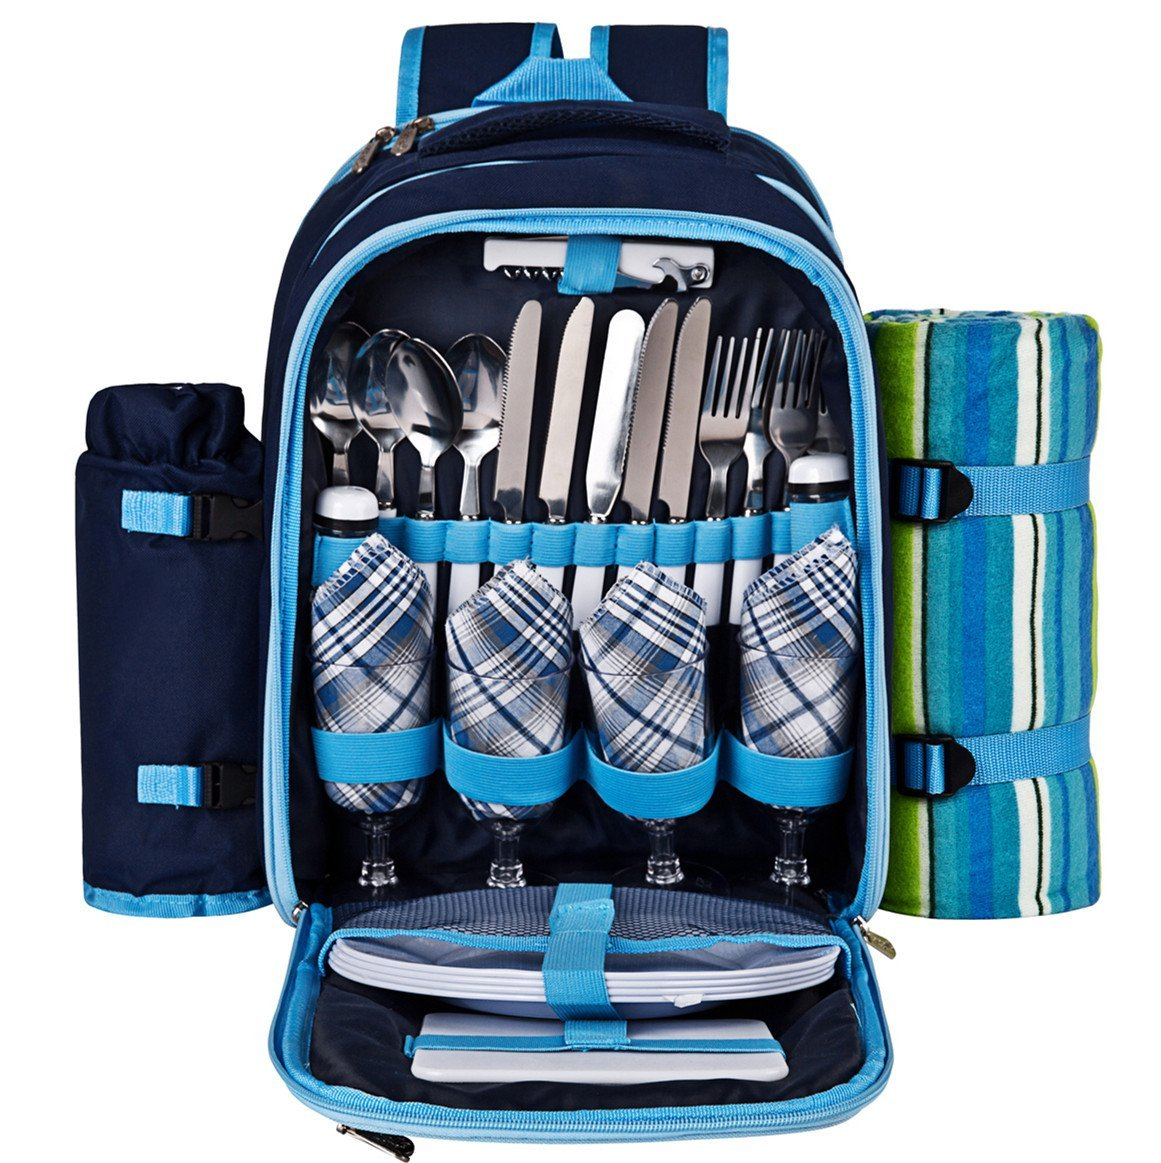 Blue Plates and Cutlery Set Ferlin Picnic Backpack for 4 With Cooler Compartment Detachable Bottle//Wine Holder Fleece Blanket